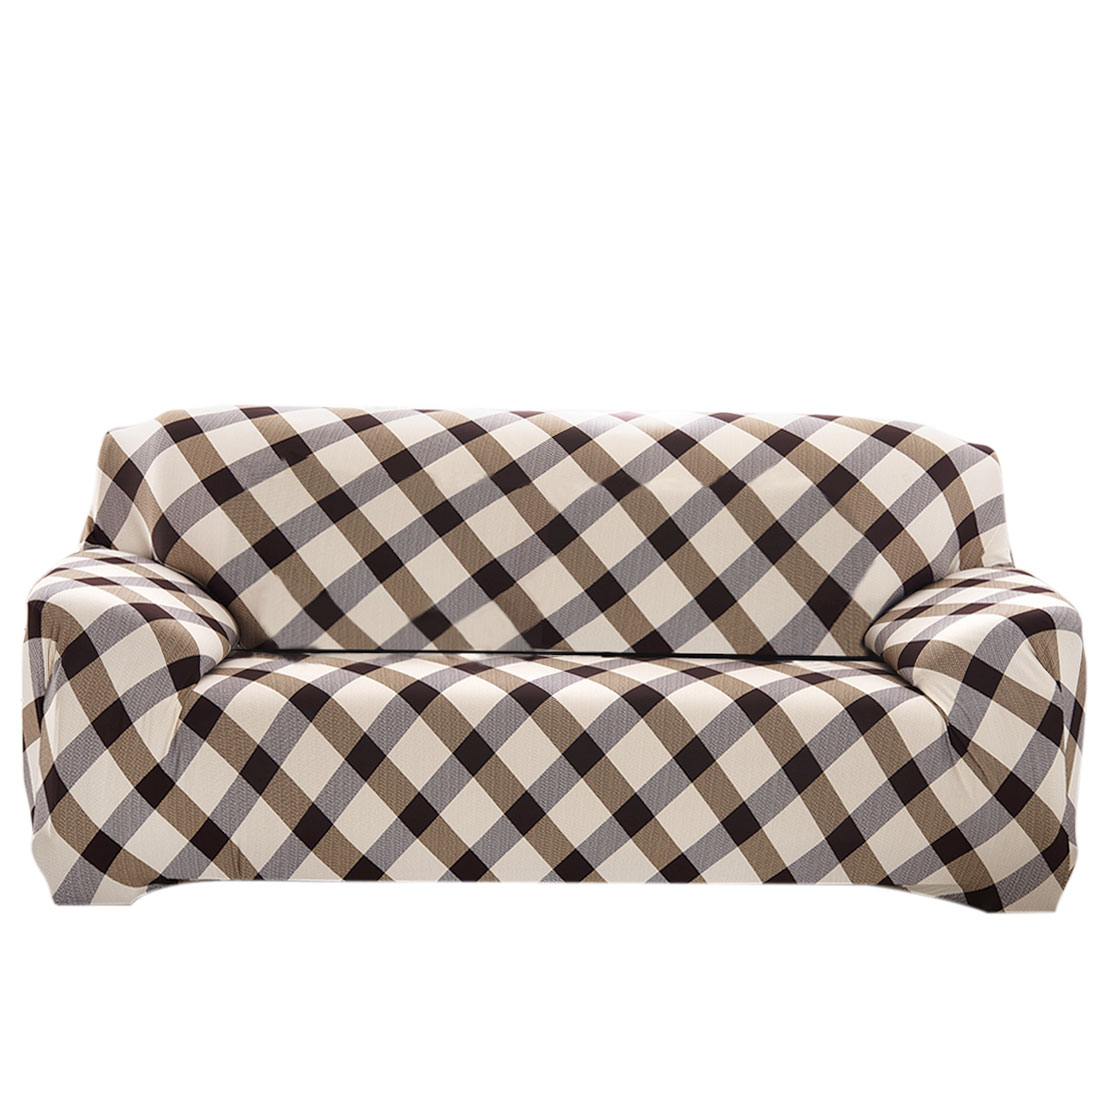 Household Polyester Grid Pattern Elastic 3 Seats Sofa Cover Slipcover Protector 74''-90''